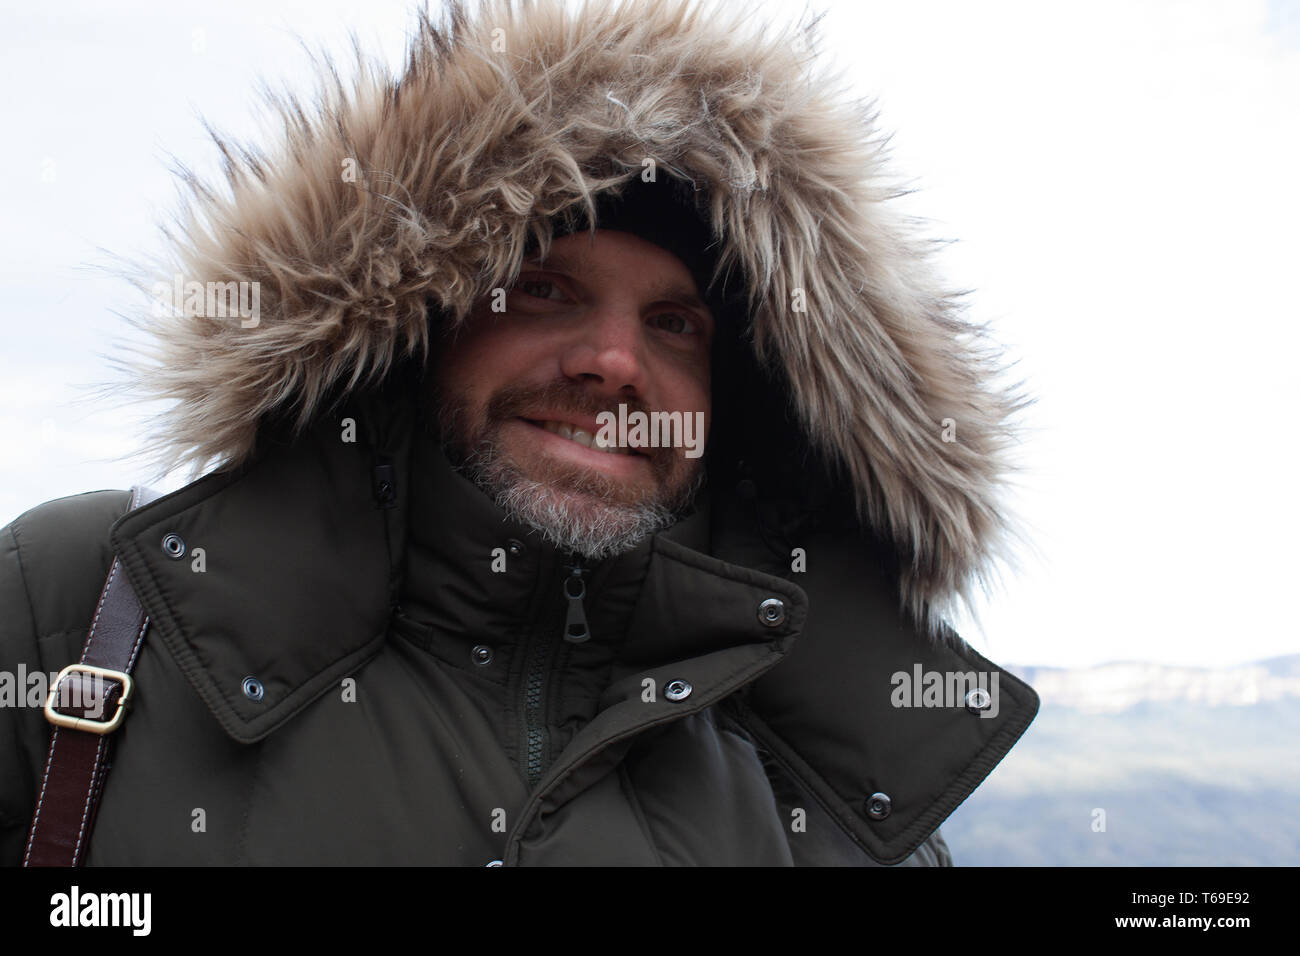 Bearded man in hooded jacket smiling - Stock Image